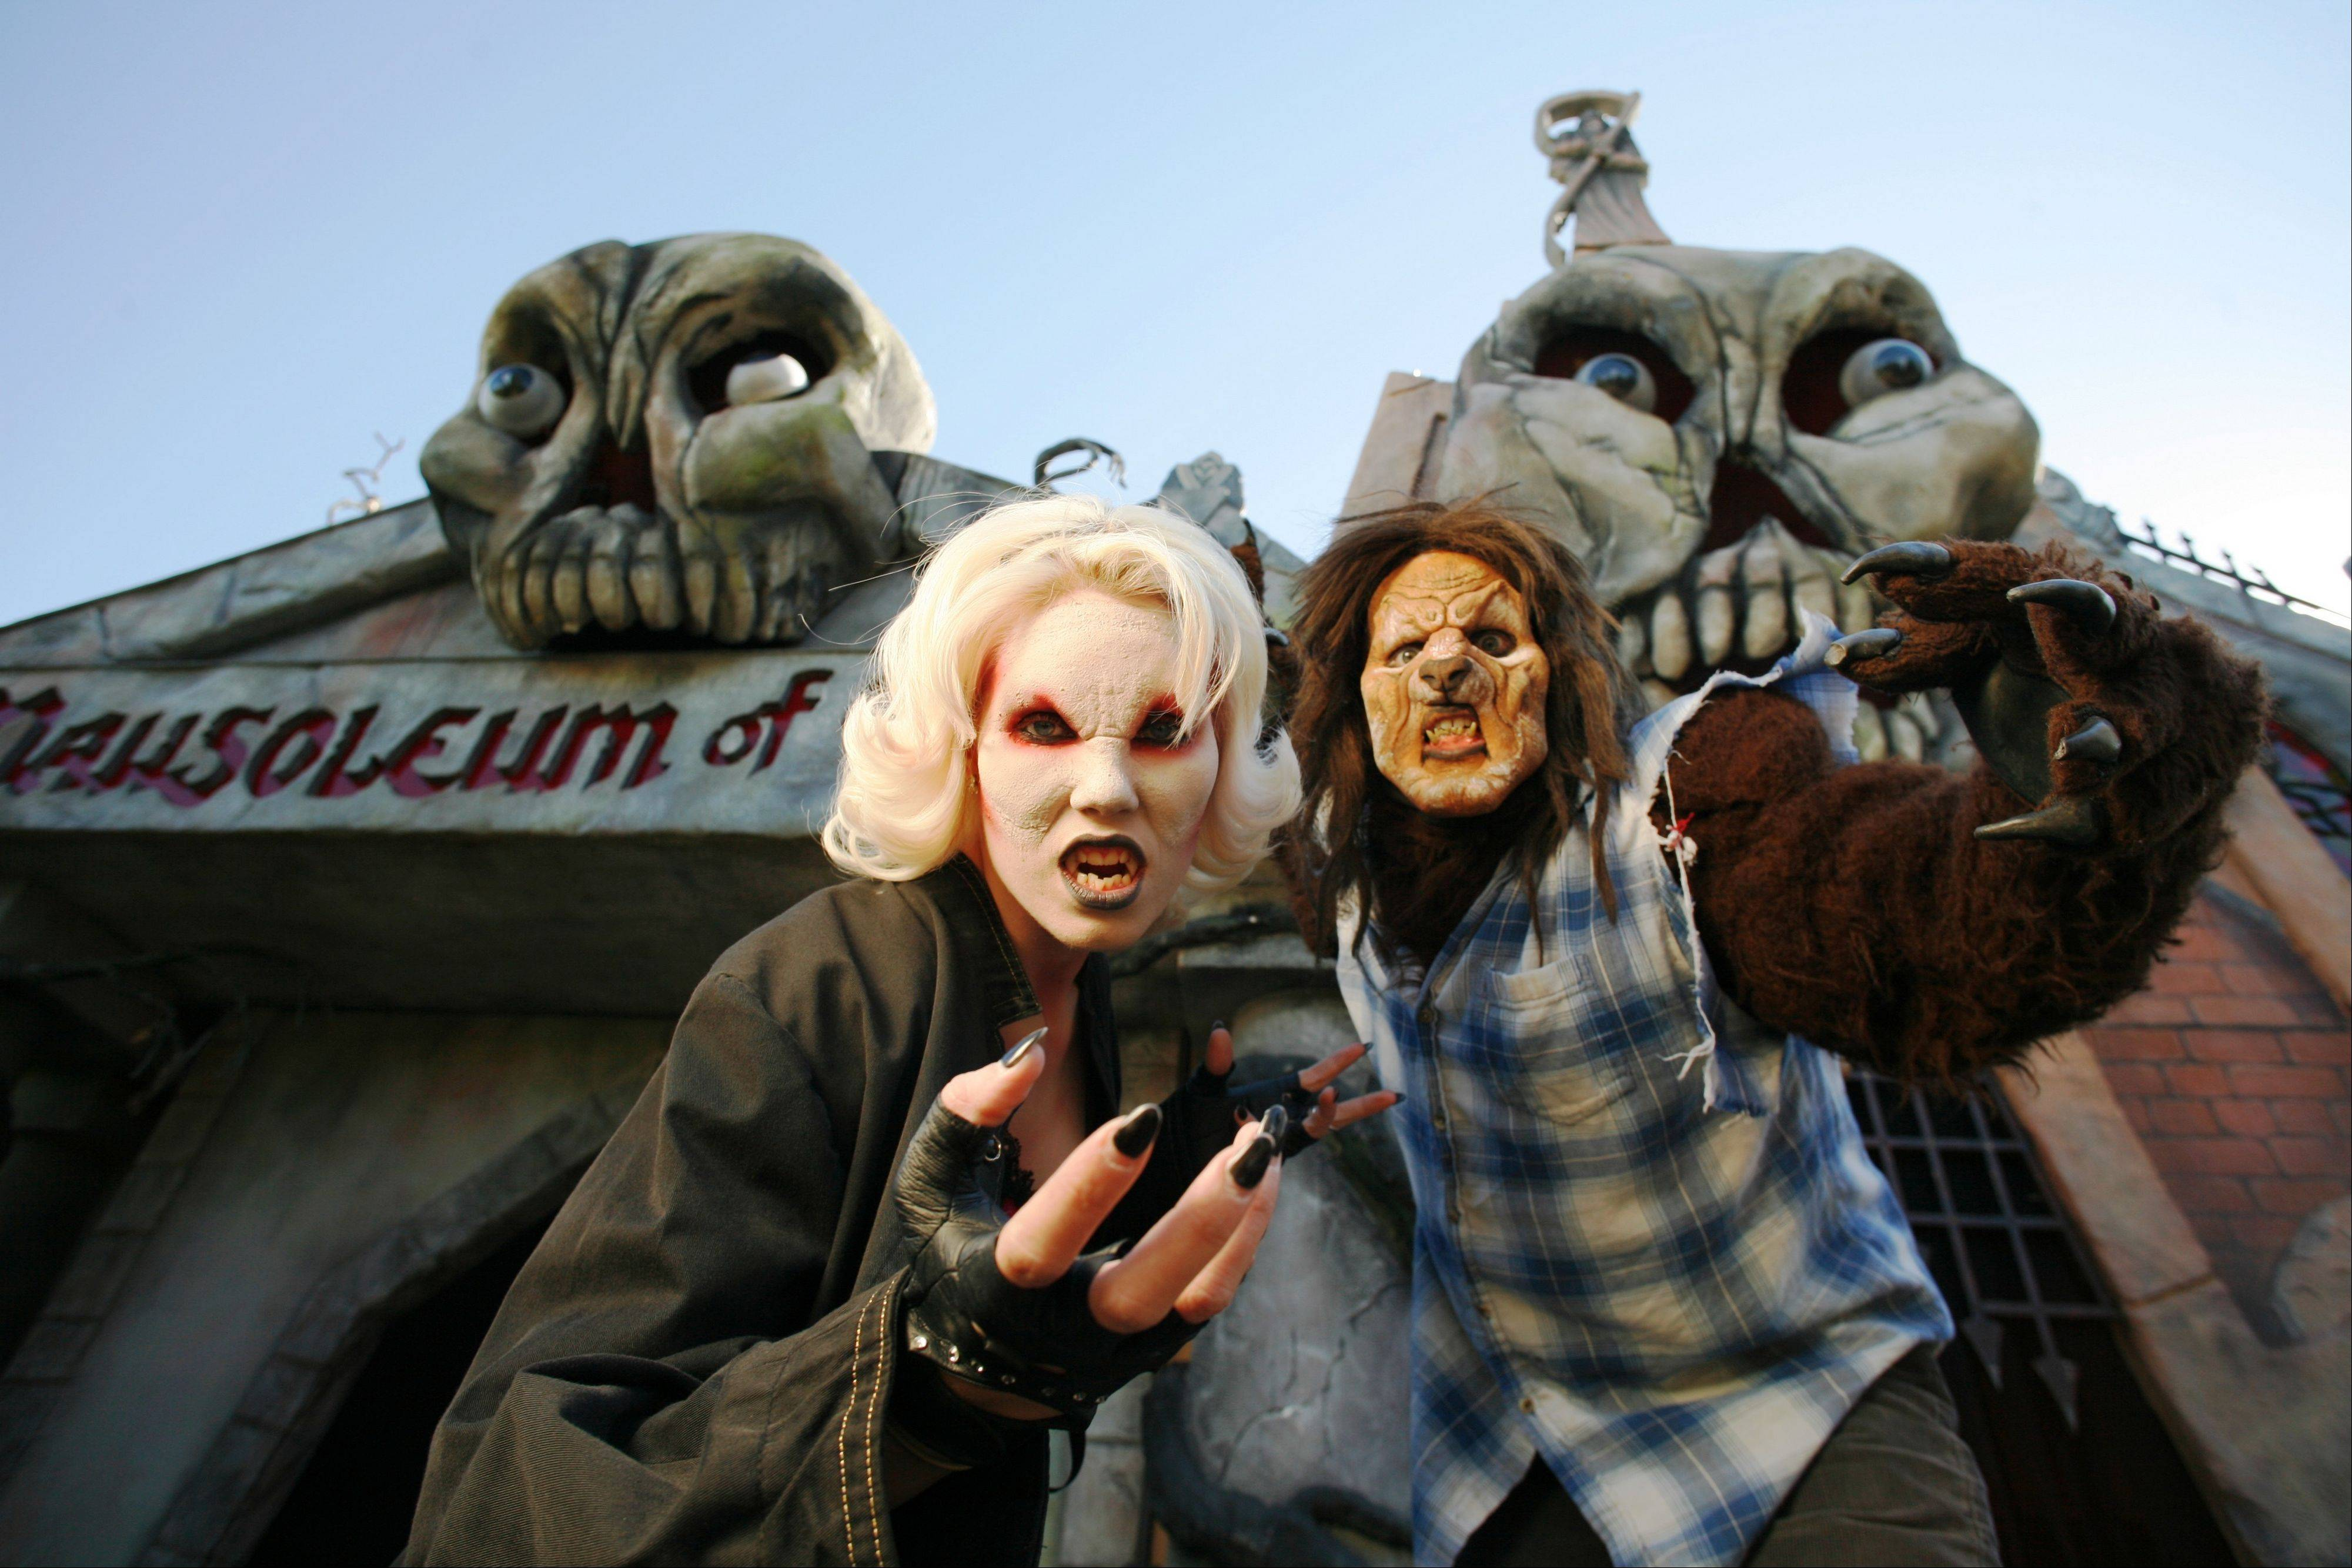 Those who dare can tour the Mausoleum of Terror and mingle with some creepy characters as part of Frightfest at Six Flags Great America in Gurnee.